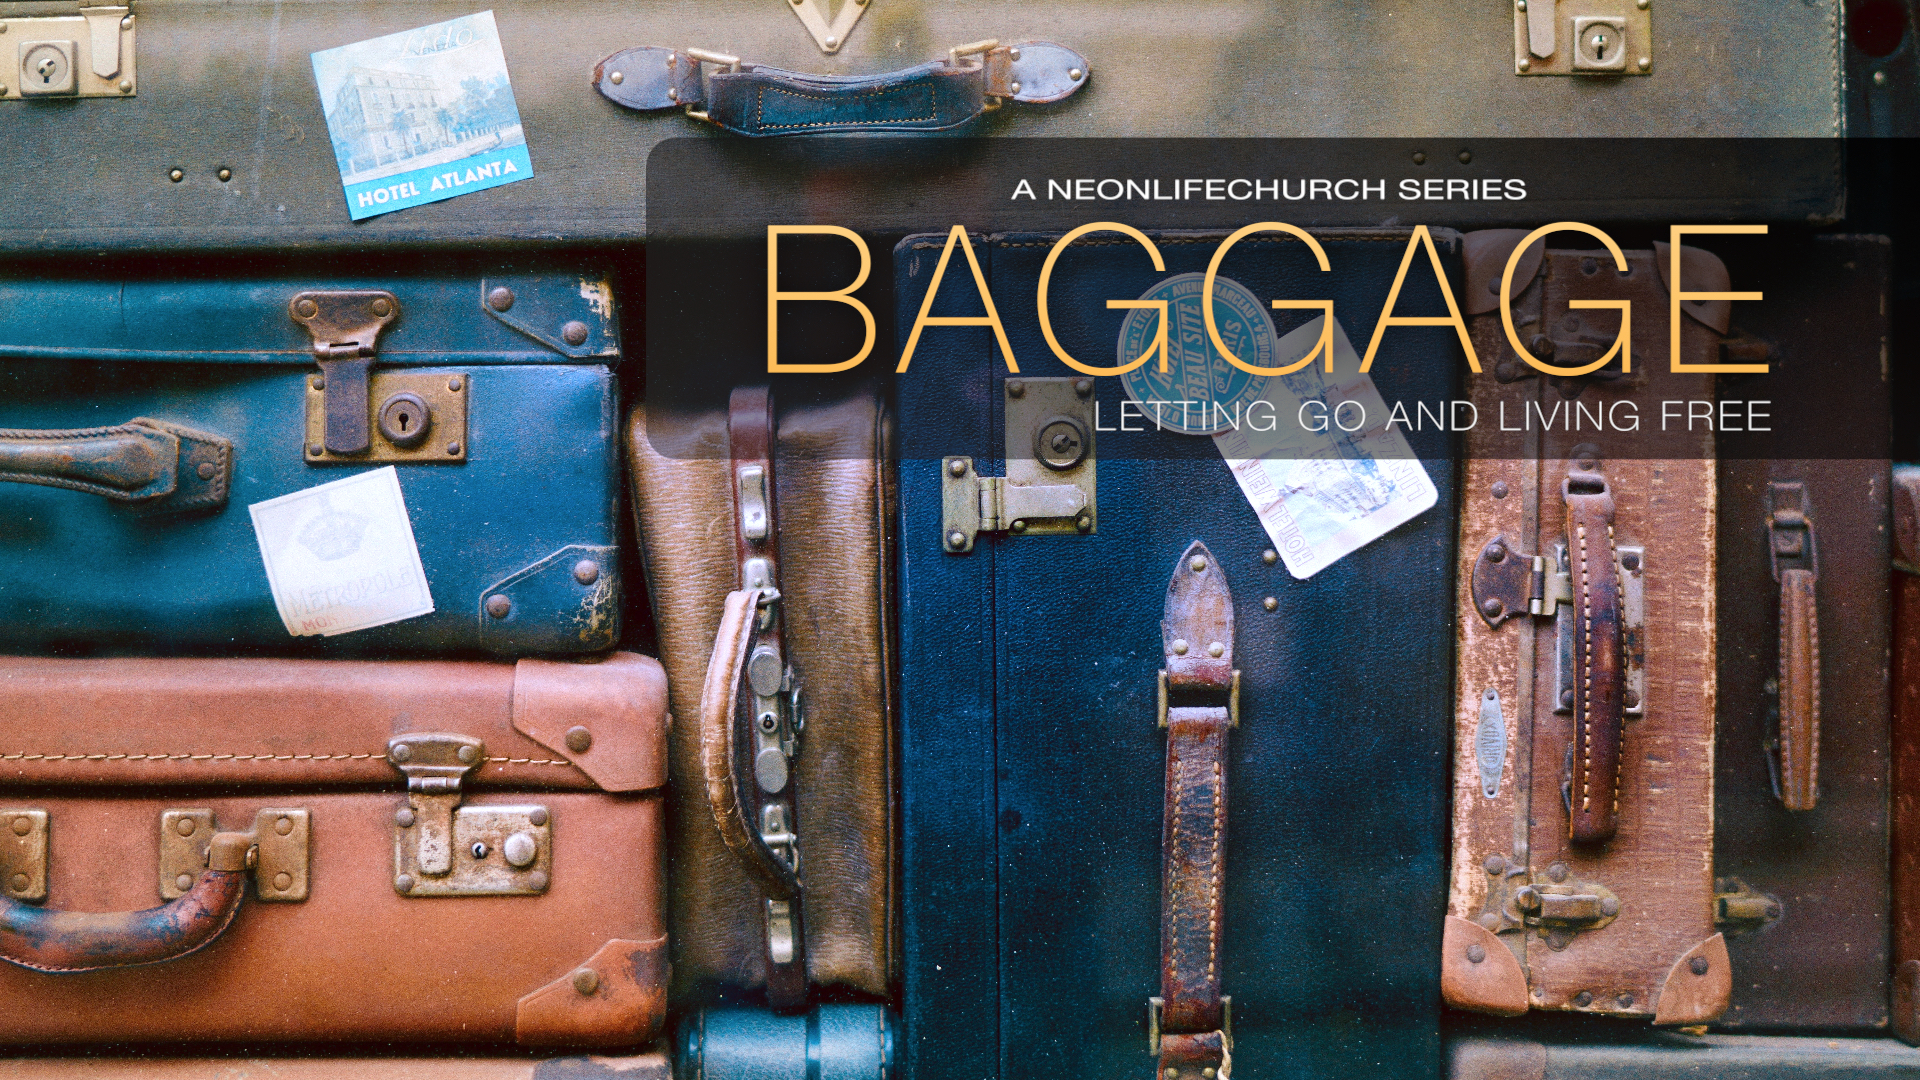 Baggage Series.jpeg